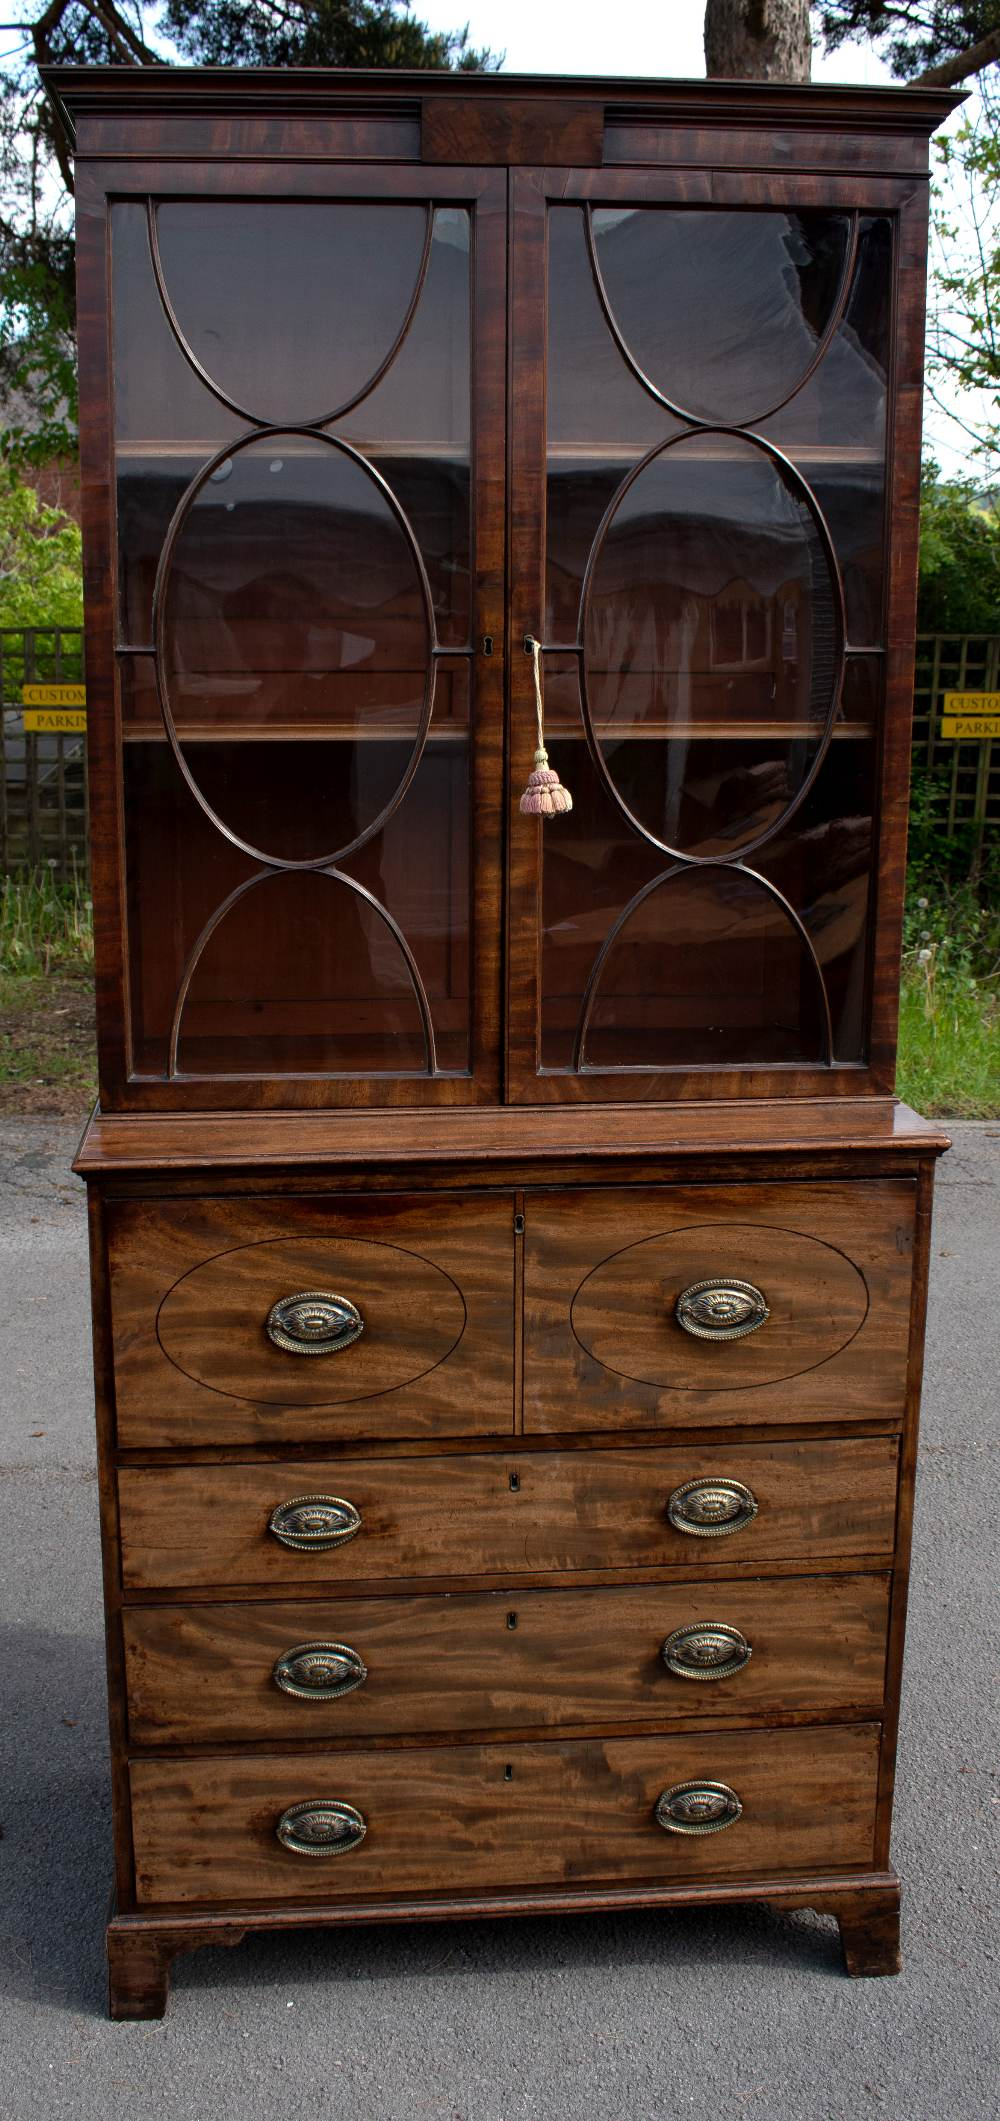 An early 19th century mahogany secretaire bookcase with moulded cornice above two astragal glazed